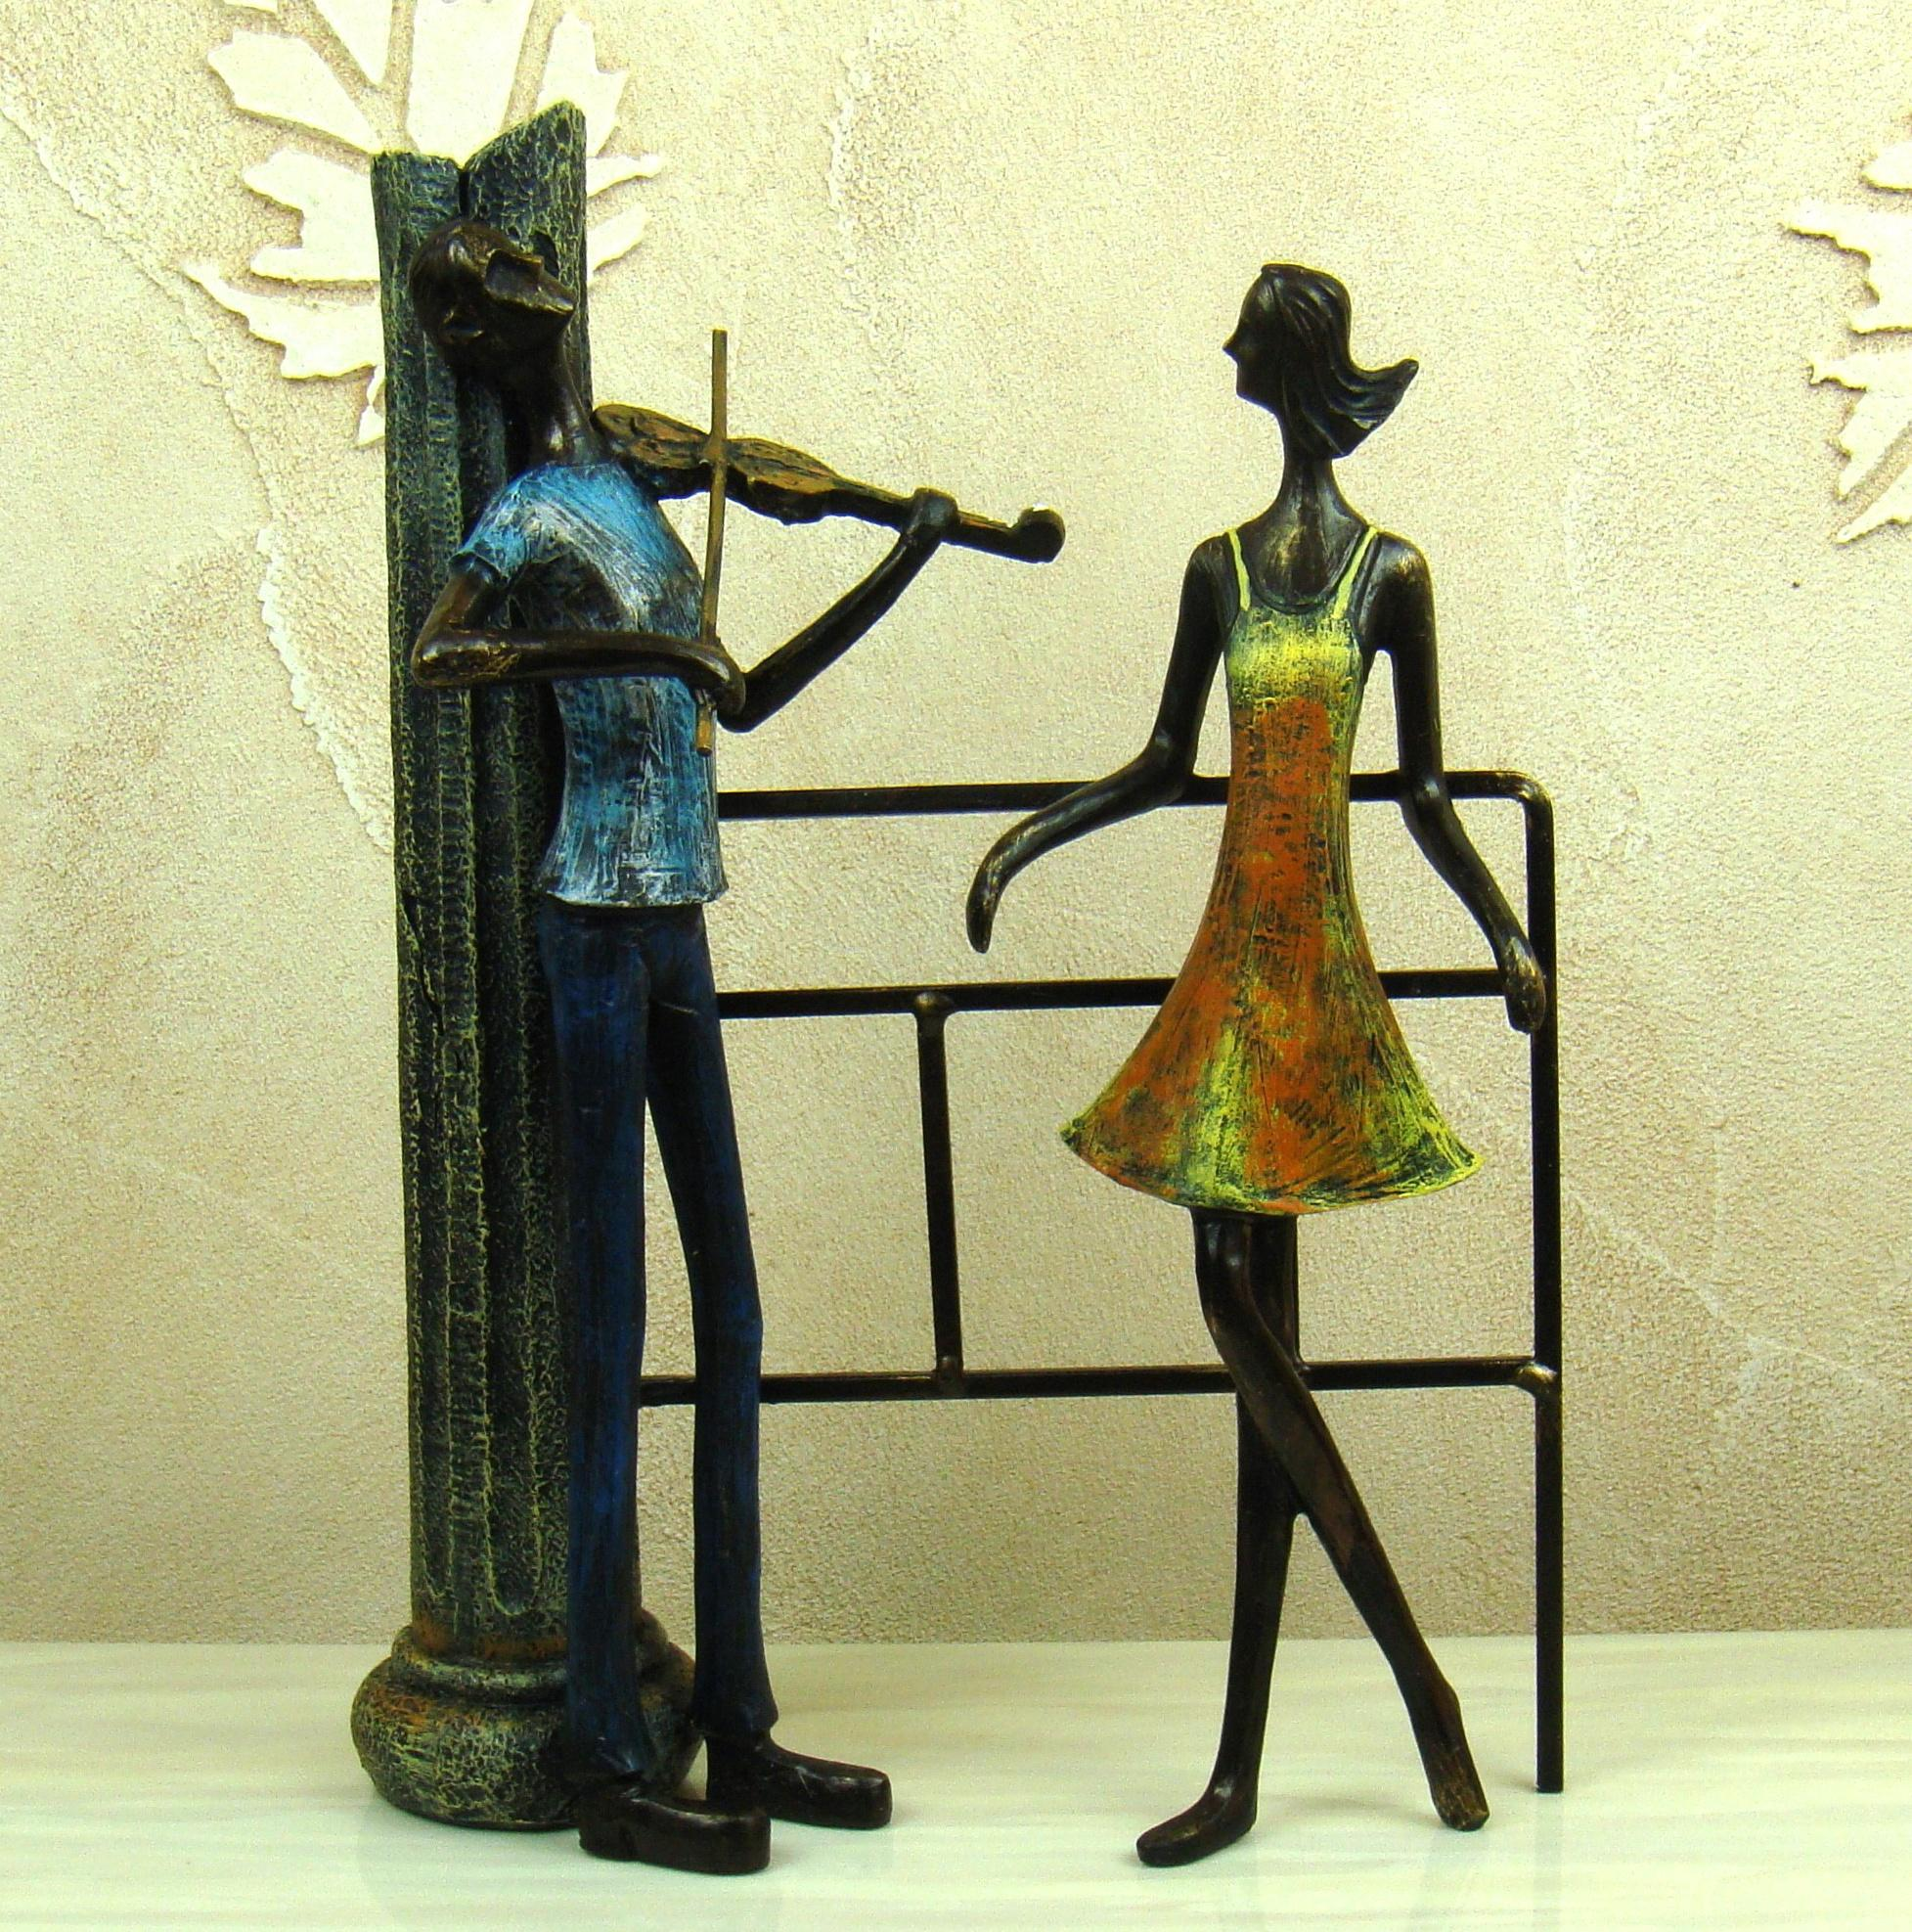 2018 Retro Wrought Iron Art Proposal Lovers Figurine Abstractive ...